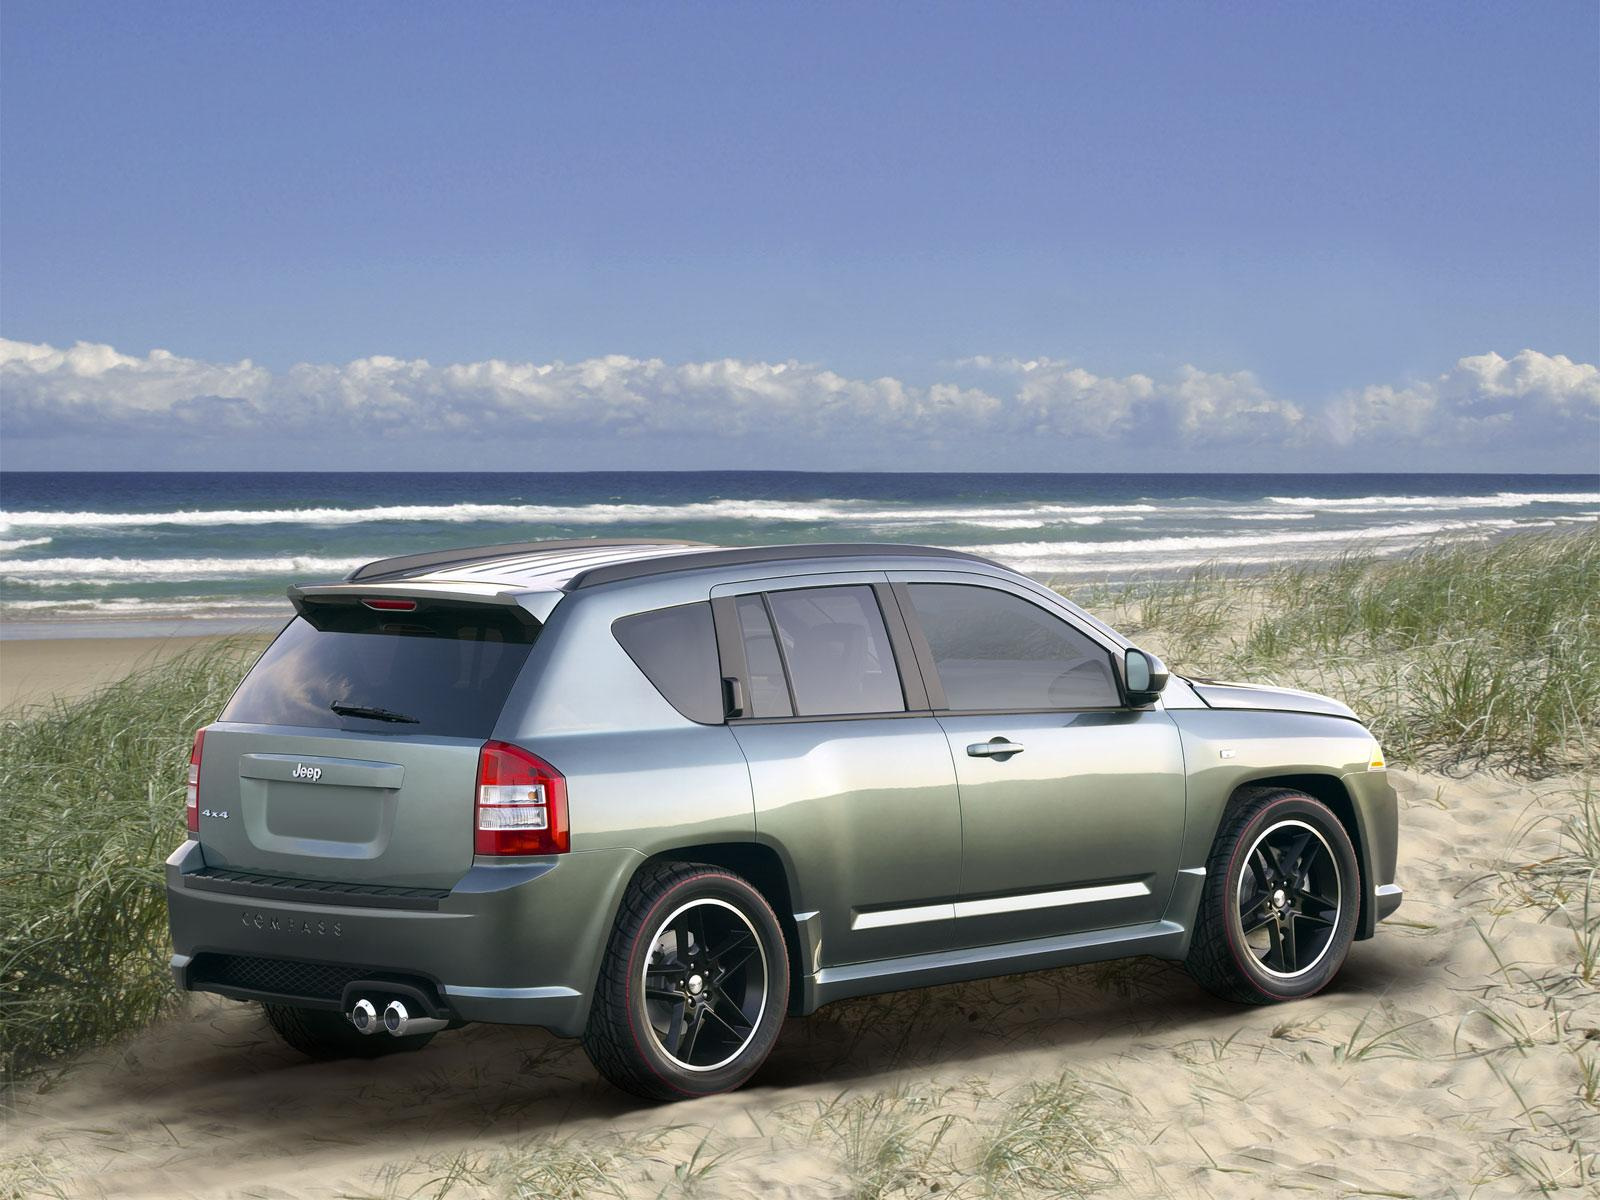 Jeep Compass photo 27181